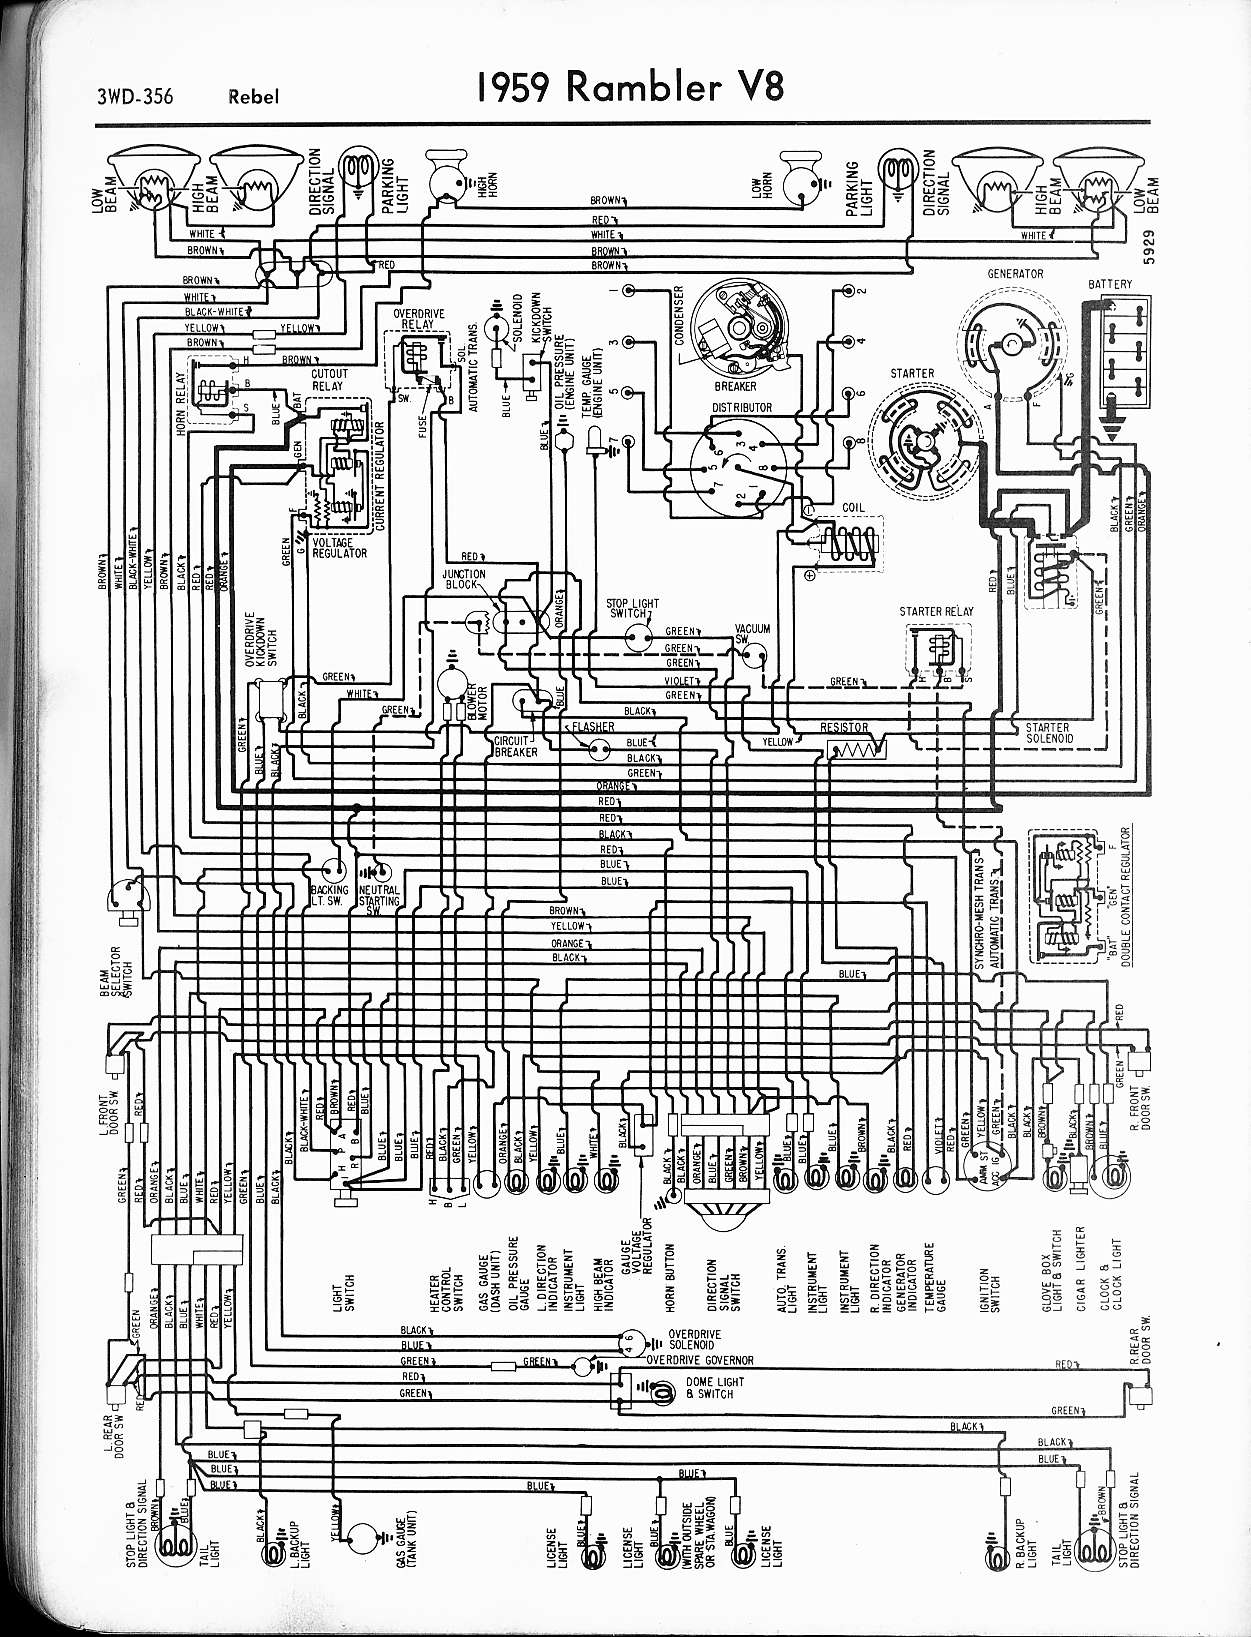 rambler wiring diagrams the old car manual project rh oldcarmanualproject com